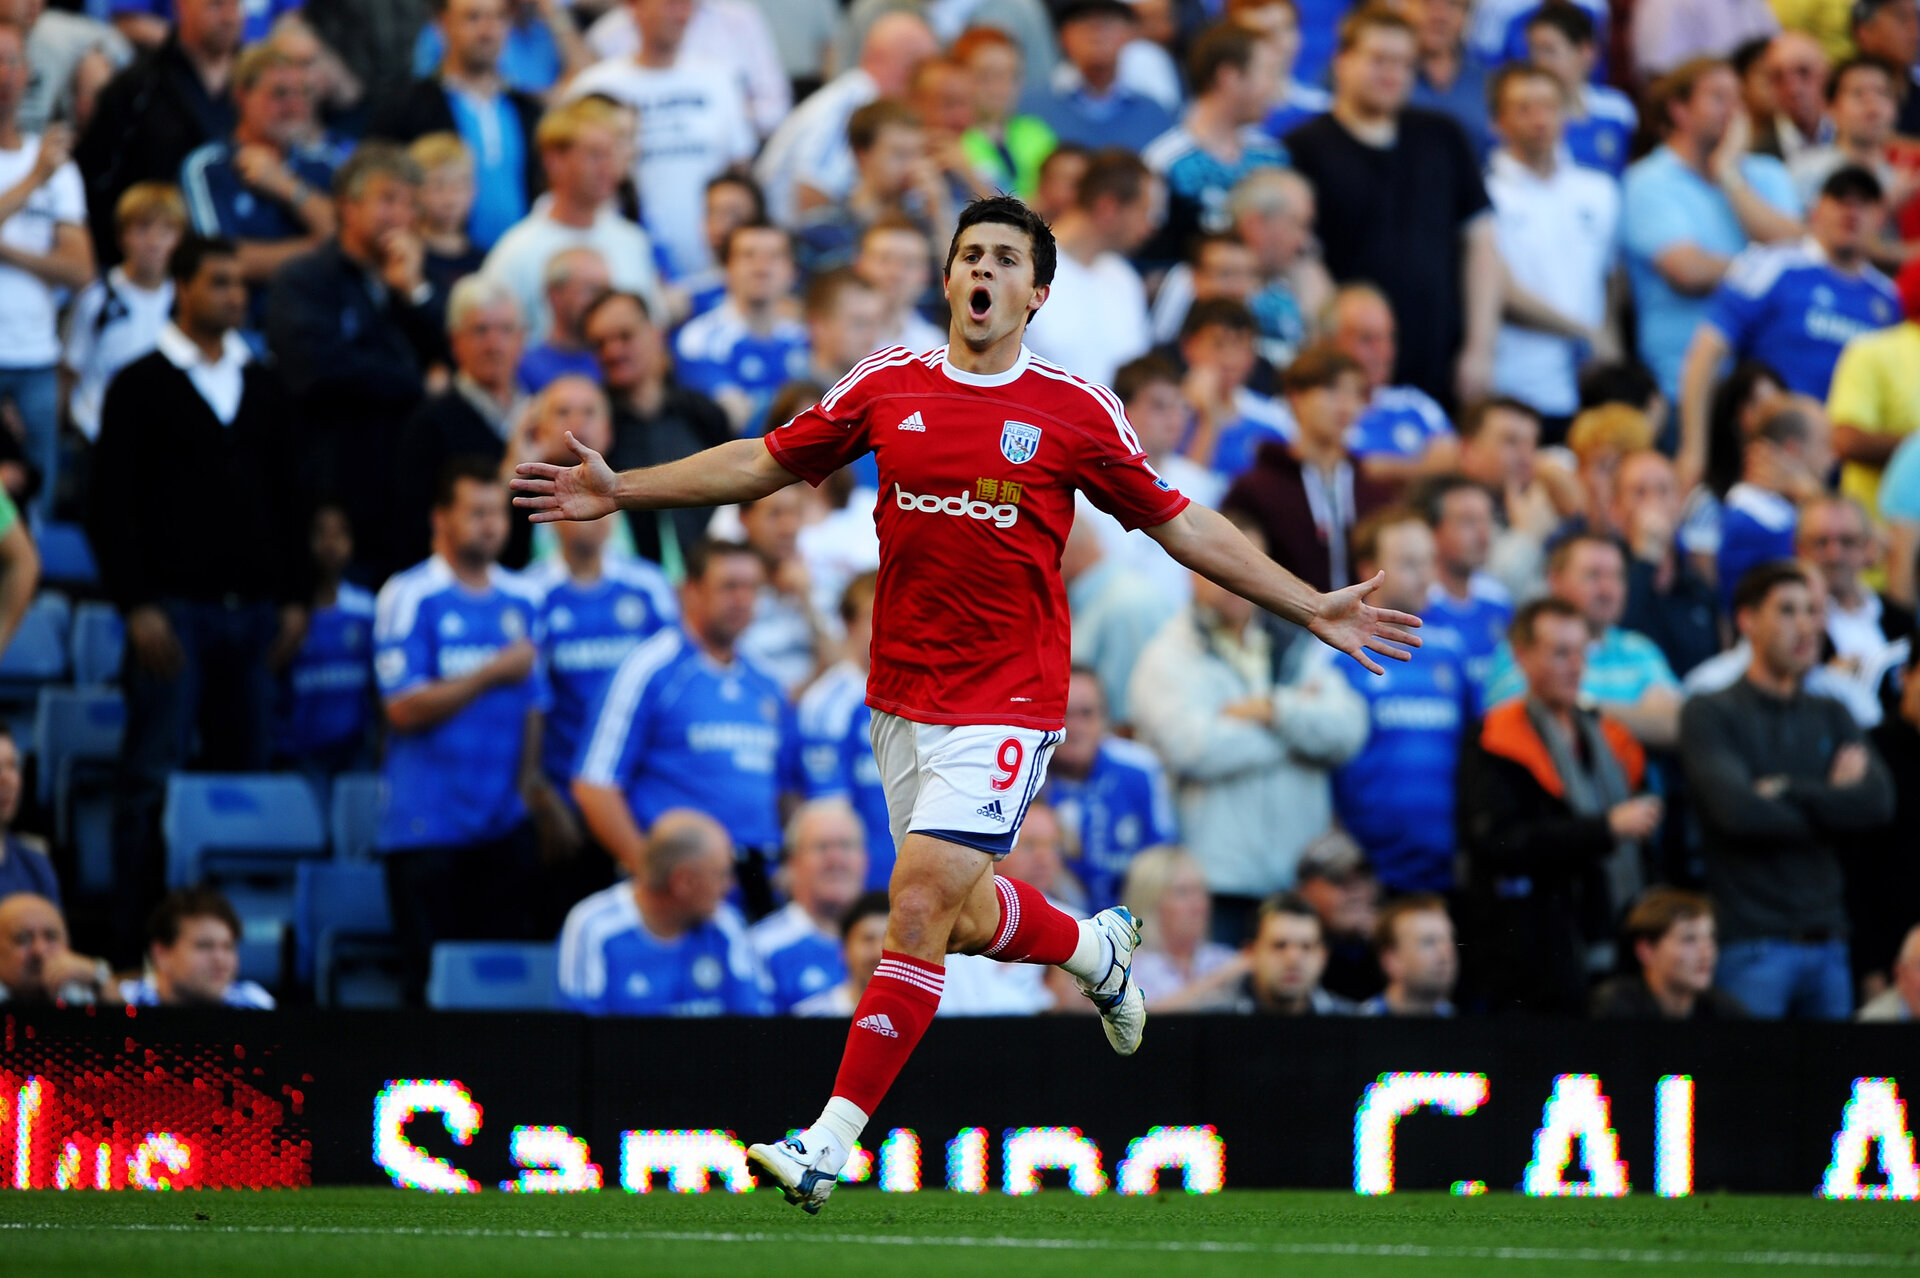 LONDON, ENGLAND - AUGUST 20:  Shane Long of West Brom celebrates after scoring the opening goal during the Barclays Premier League match between Chelsea and West Bromwich Albion at Stamford Bridge on August 20, 2011 in London, England.  (Photo by Laurence Griffiths/Getty Images)